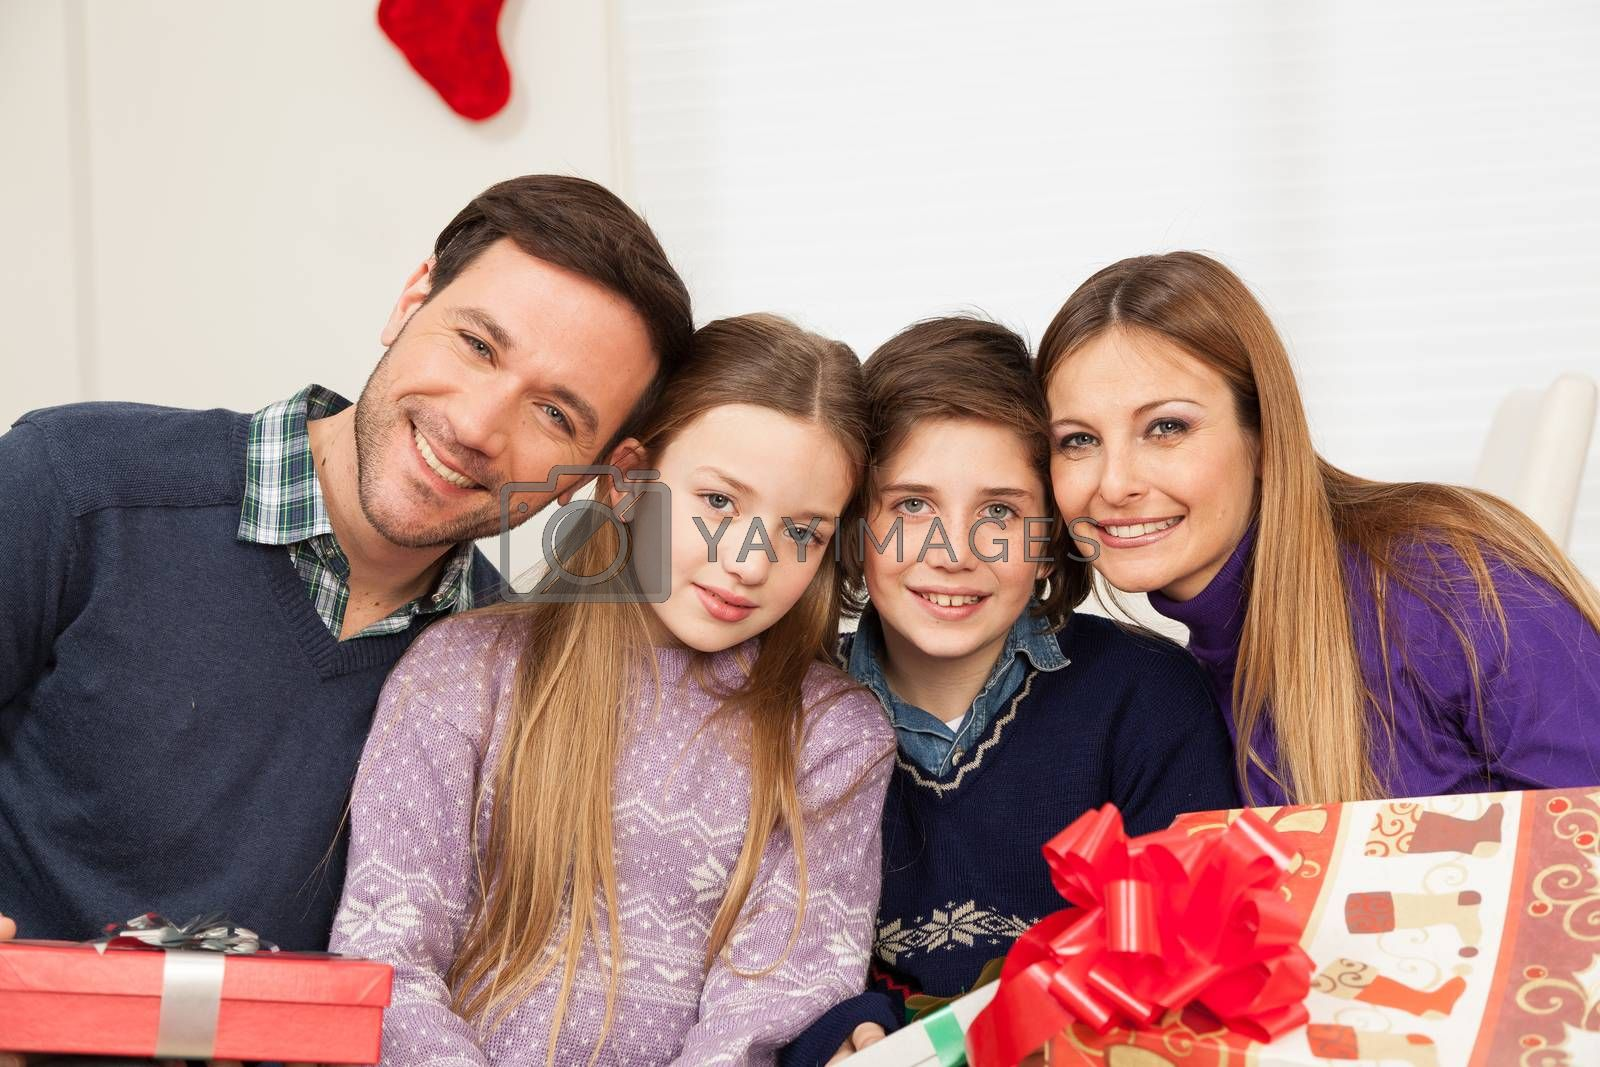 10-12, 30-35, 8-10, adorable, affection, background, beautiful, beauty, boy, camera, care, casual, caucasian, celebration, child, children, christmas, couch, cute, daughter, decoration, face, family, father, front, fun, gift, girl, golden, green, happiness, happy, holidays, home, horizontal, joy, kid, laughing, little, look, looking, love, male, man, model, mom, mother, old, one, people, person, portrait, property, red, releases, ribbon, sitting, small, smile, smiling, sofa, son, together, white, woman, years, young